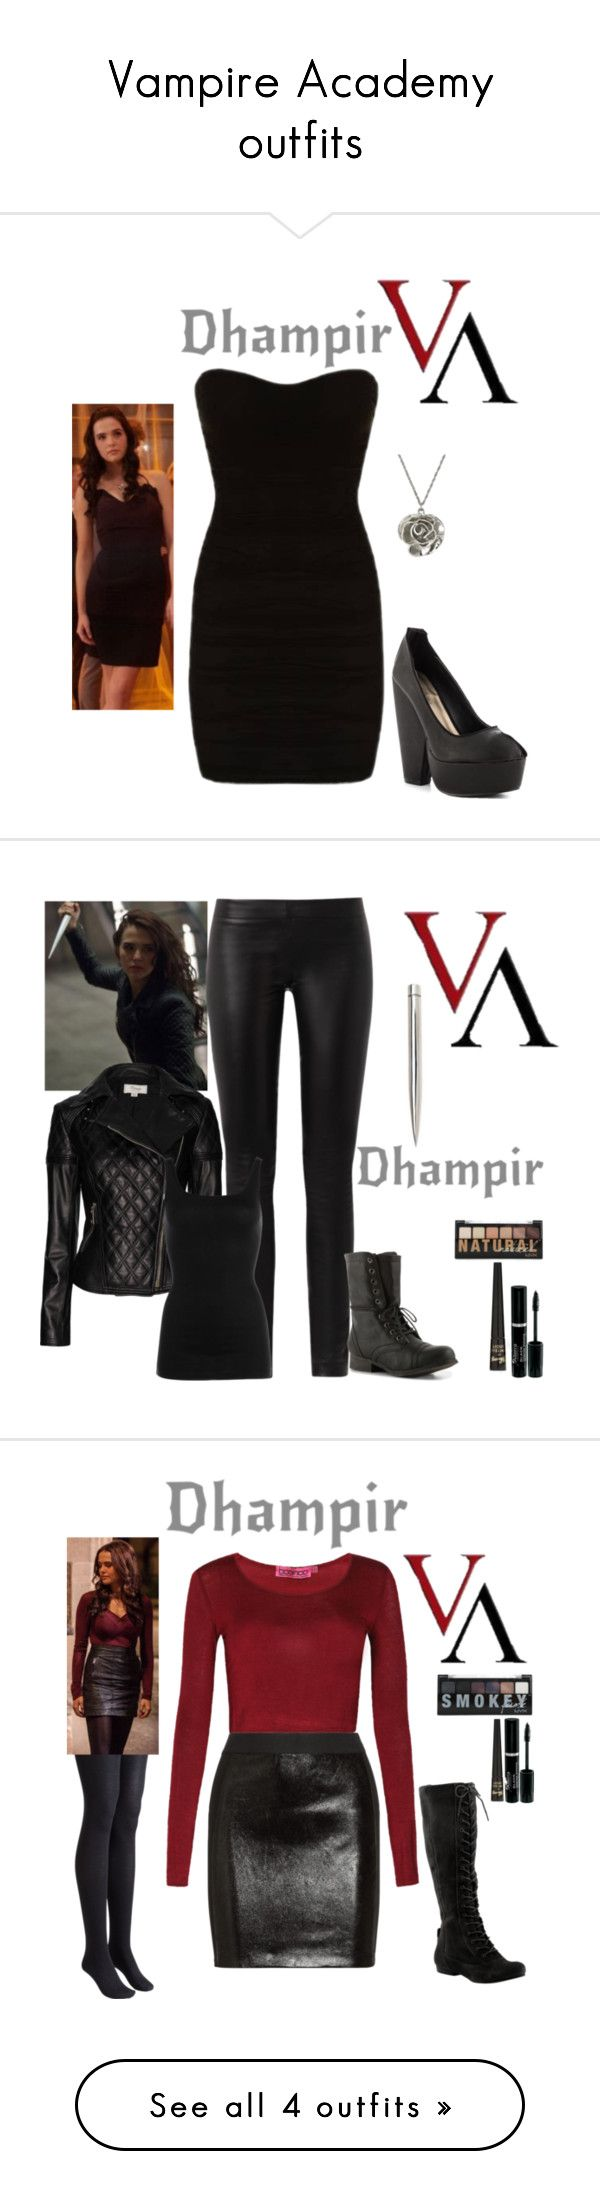 """Vampire Academy outfits"" by gone-girl ❤ liked on Polyvore"